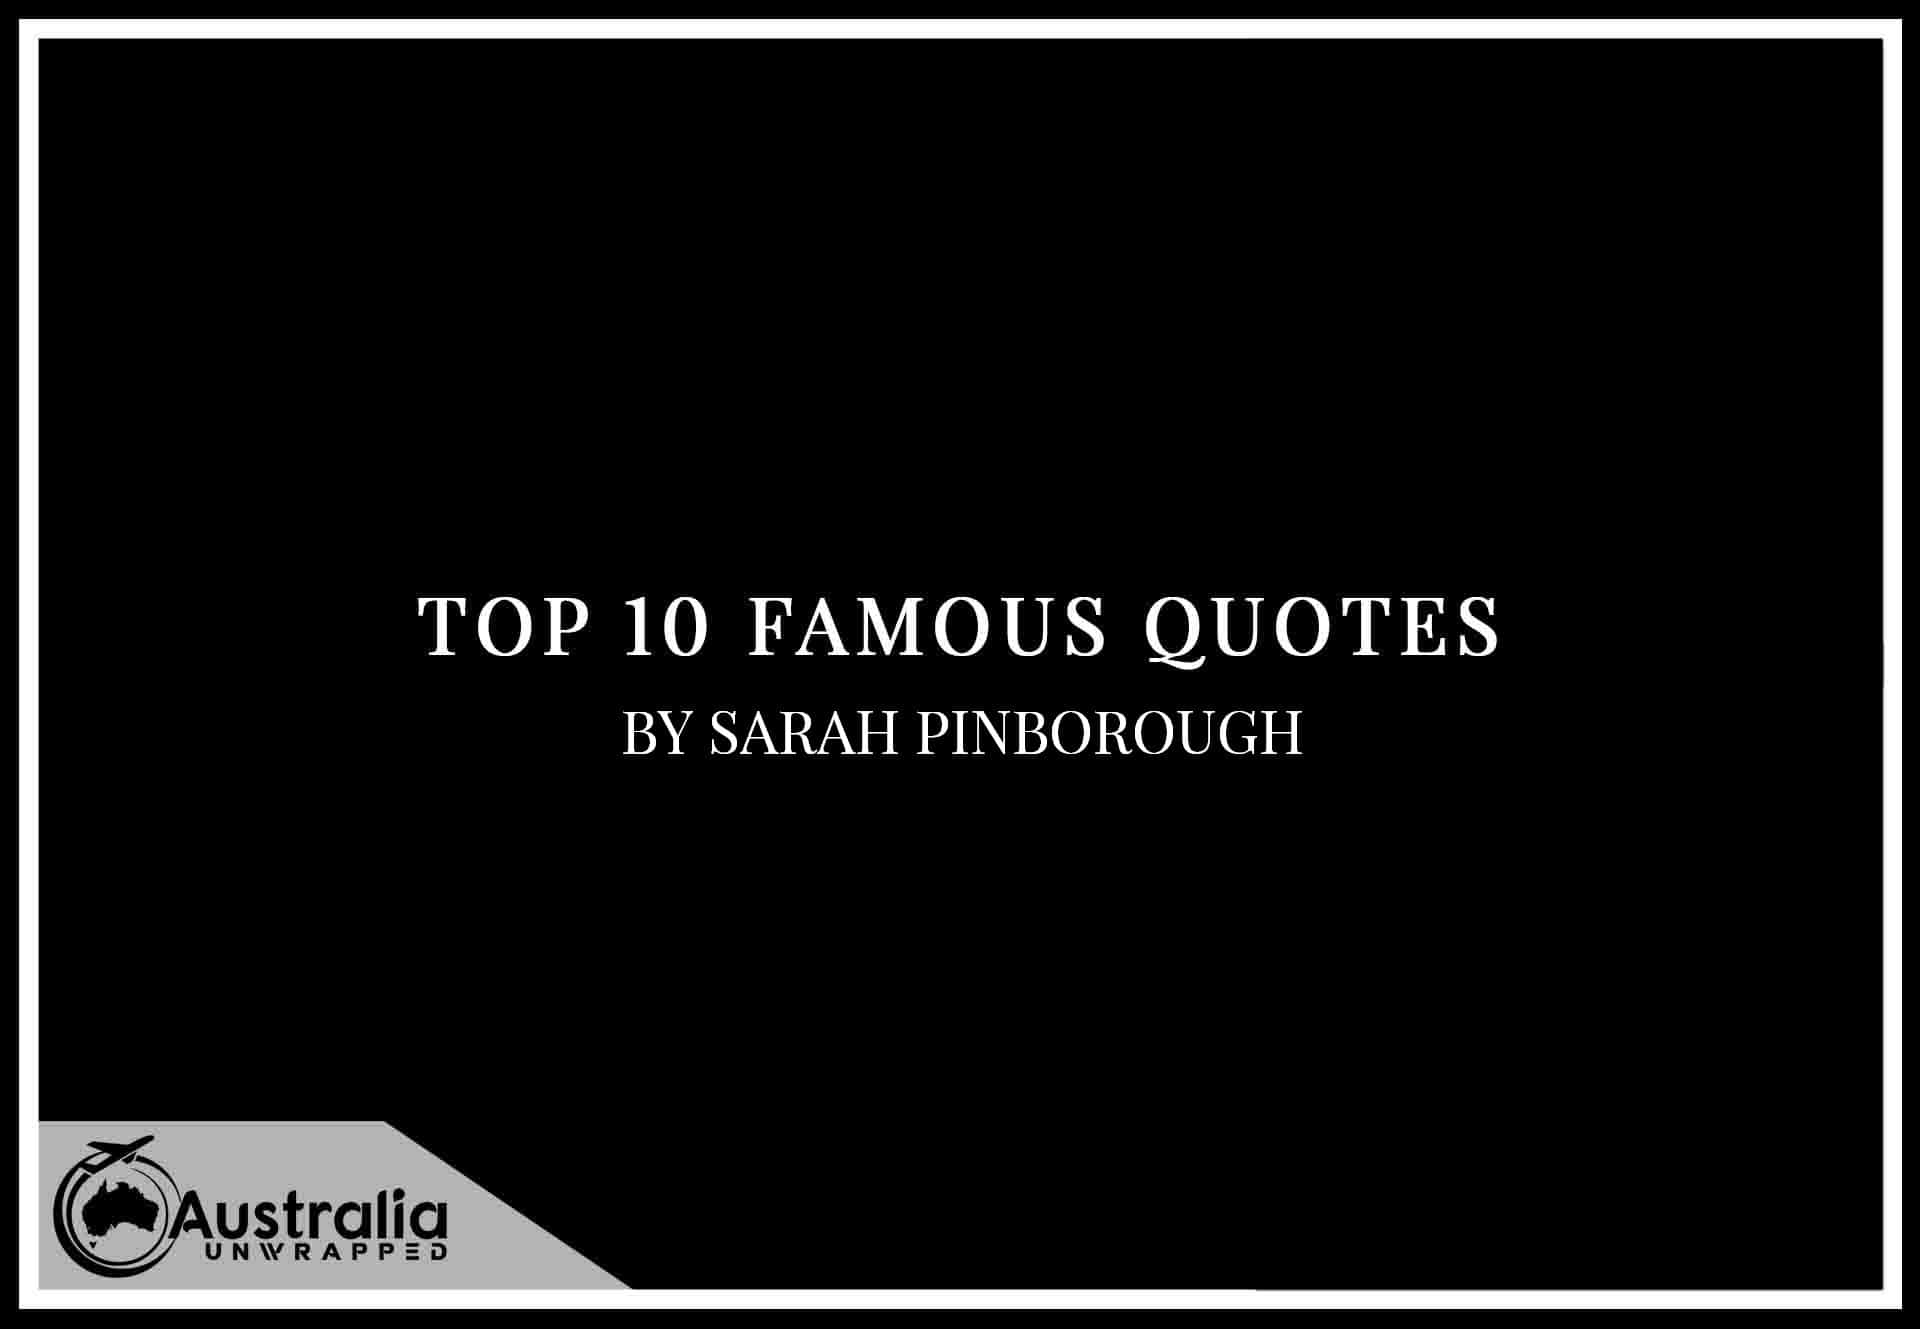 Top 10 Famous Quotes by Author Sarah Pinborough